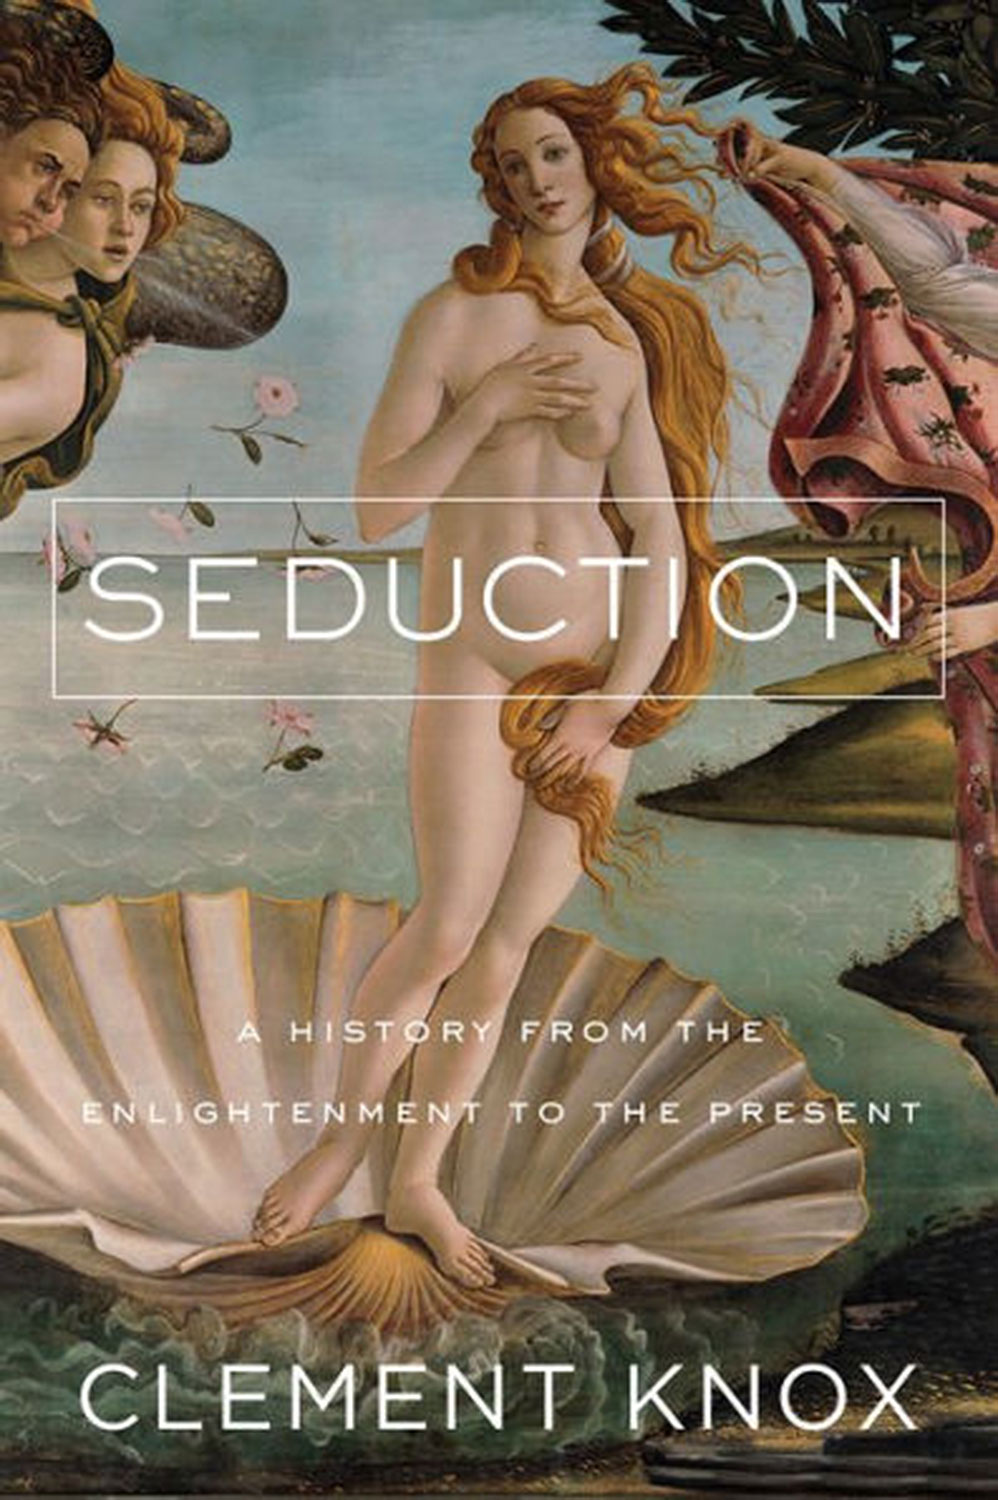 Seduction by Clement Knox